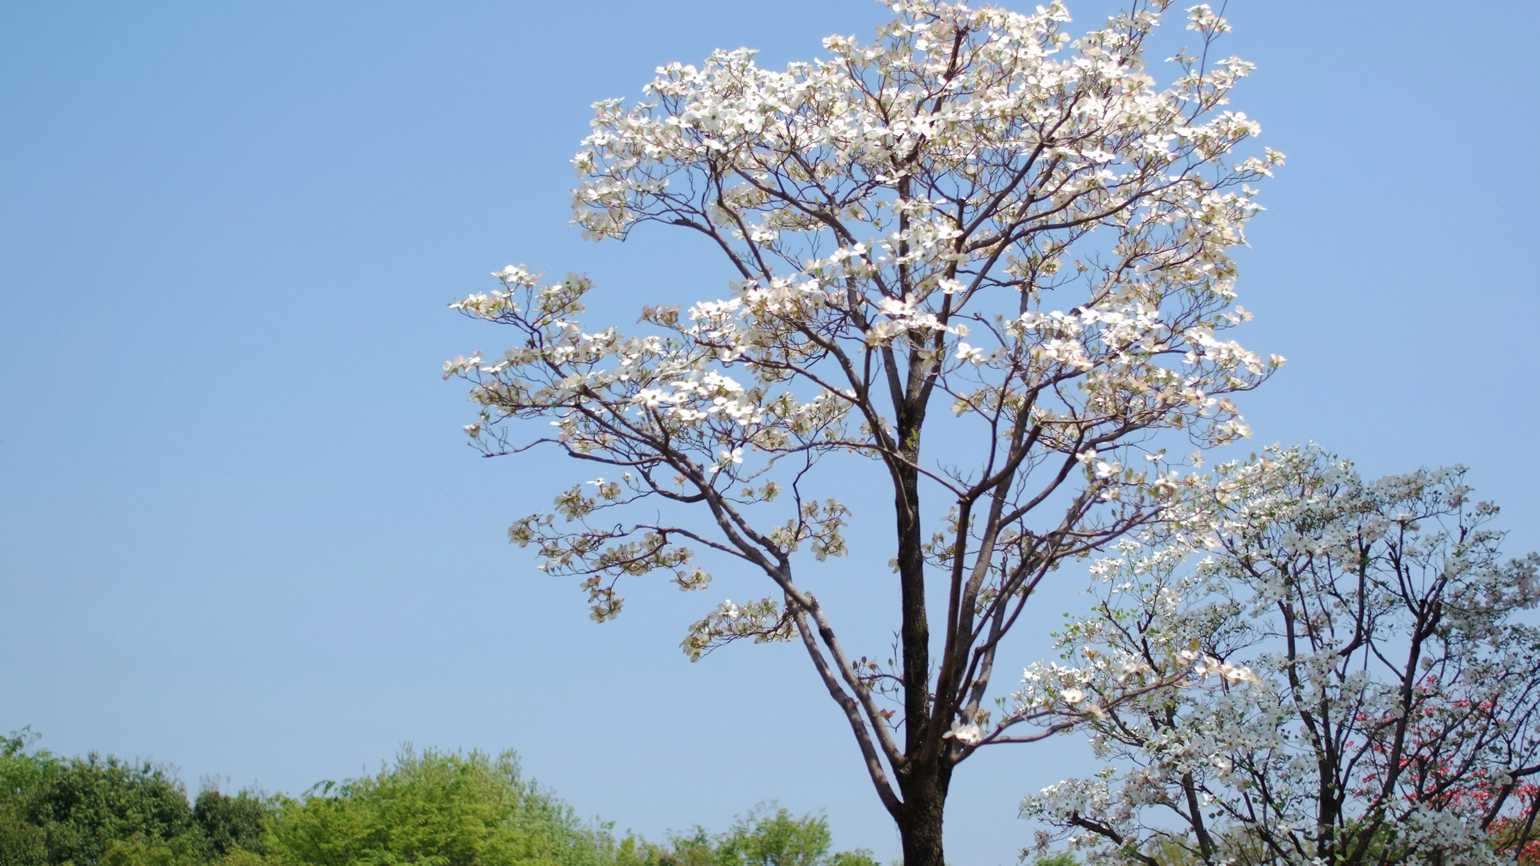 A dogwood tree in full bloom during Springtime.